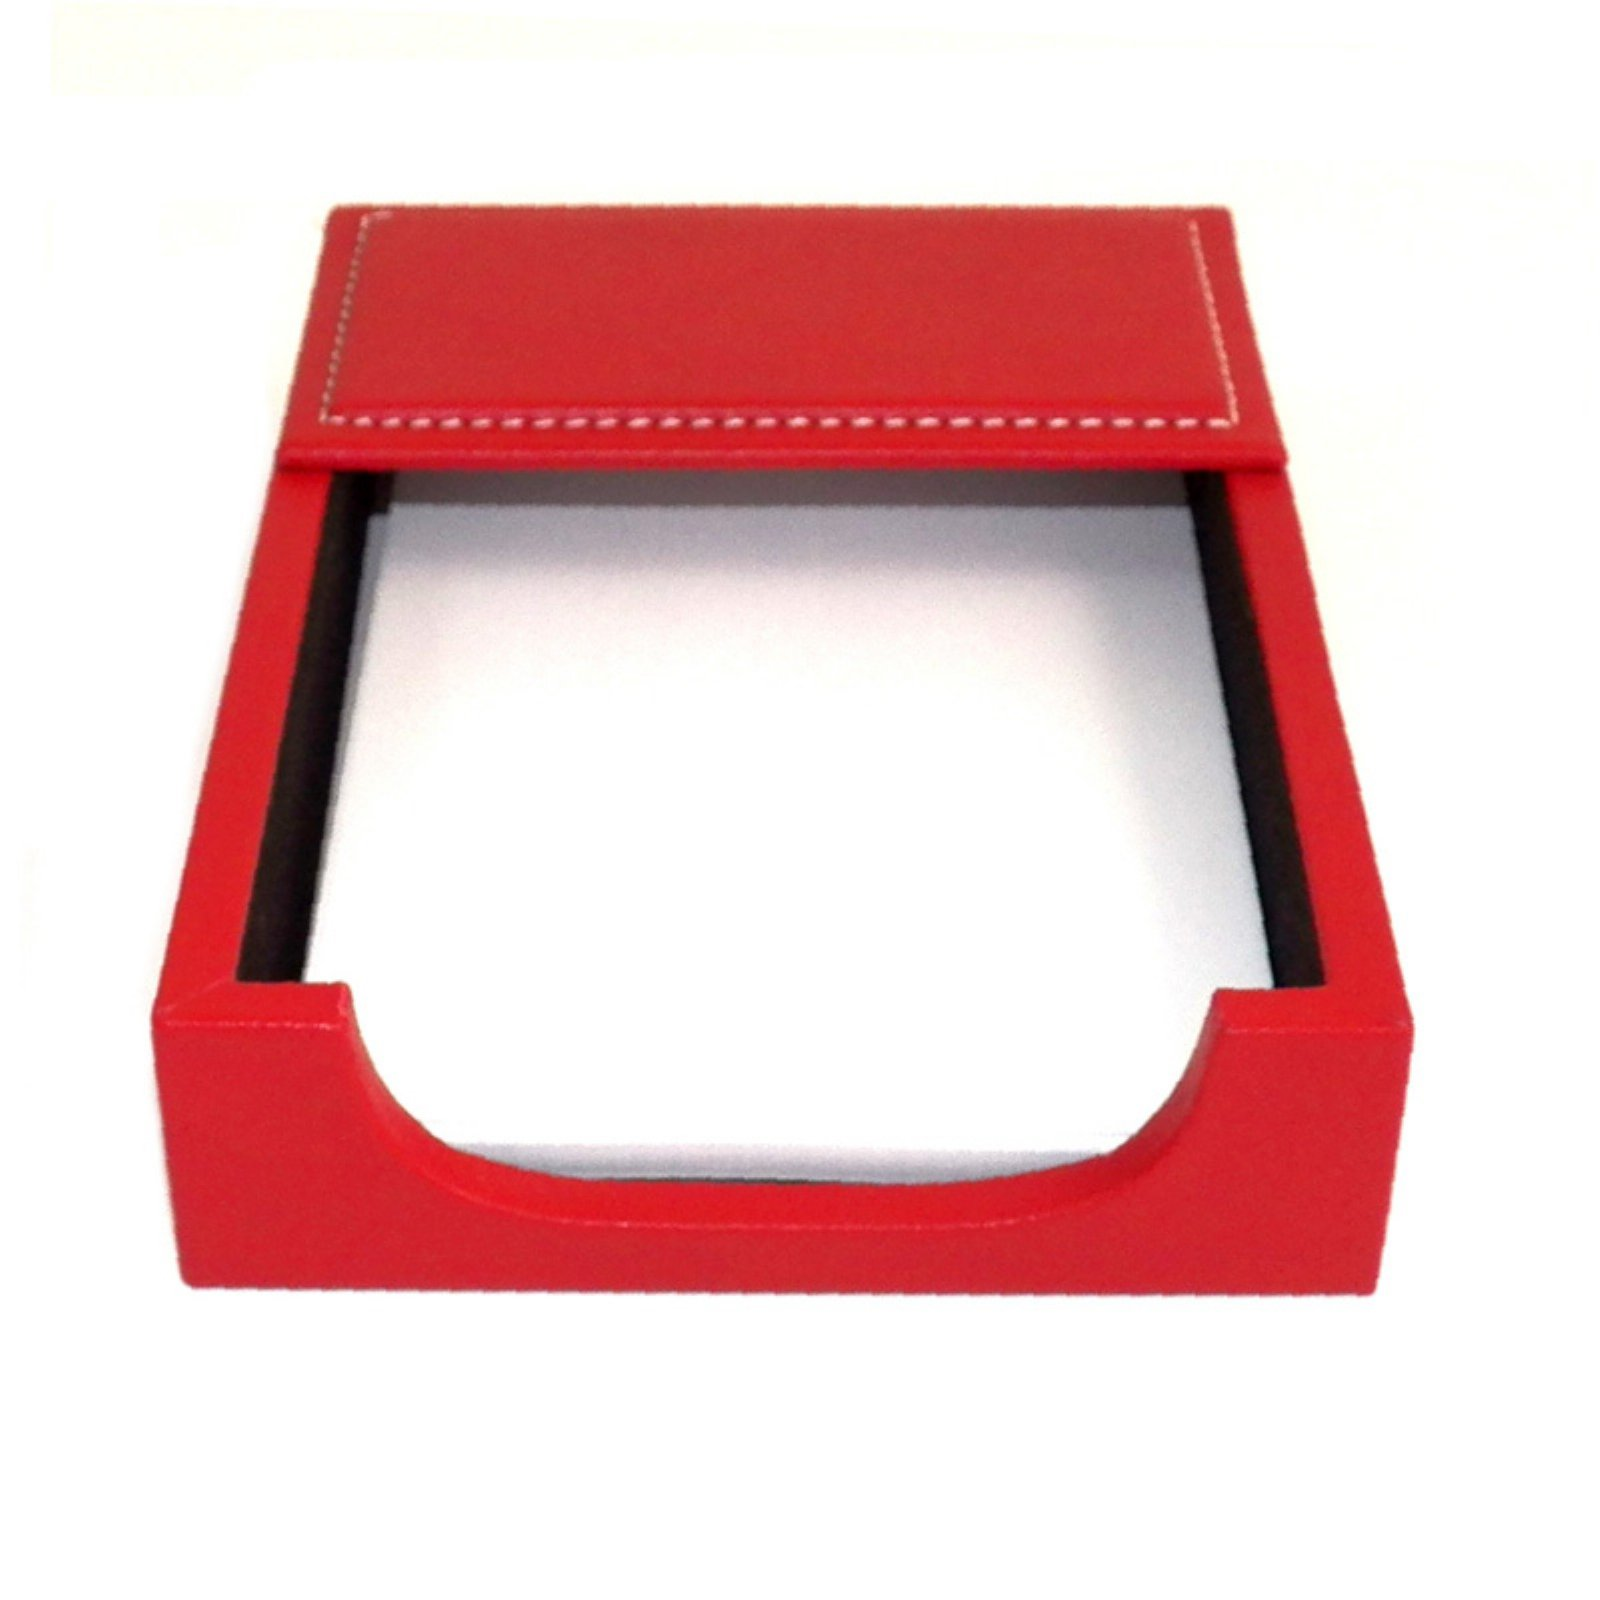 Bey-Berk International D1612 4 x 6 in. Leather Memo Holder Red by Bey Berk